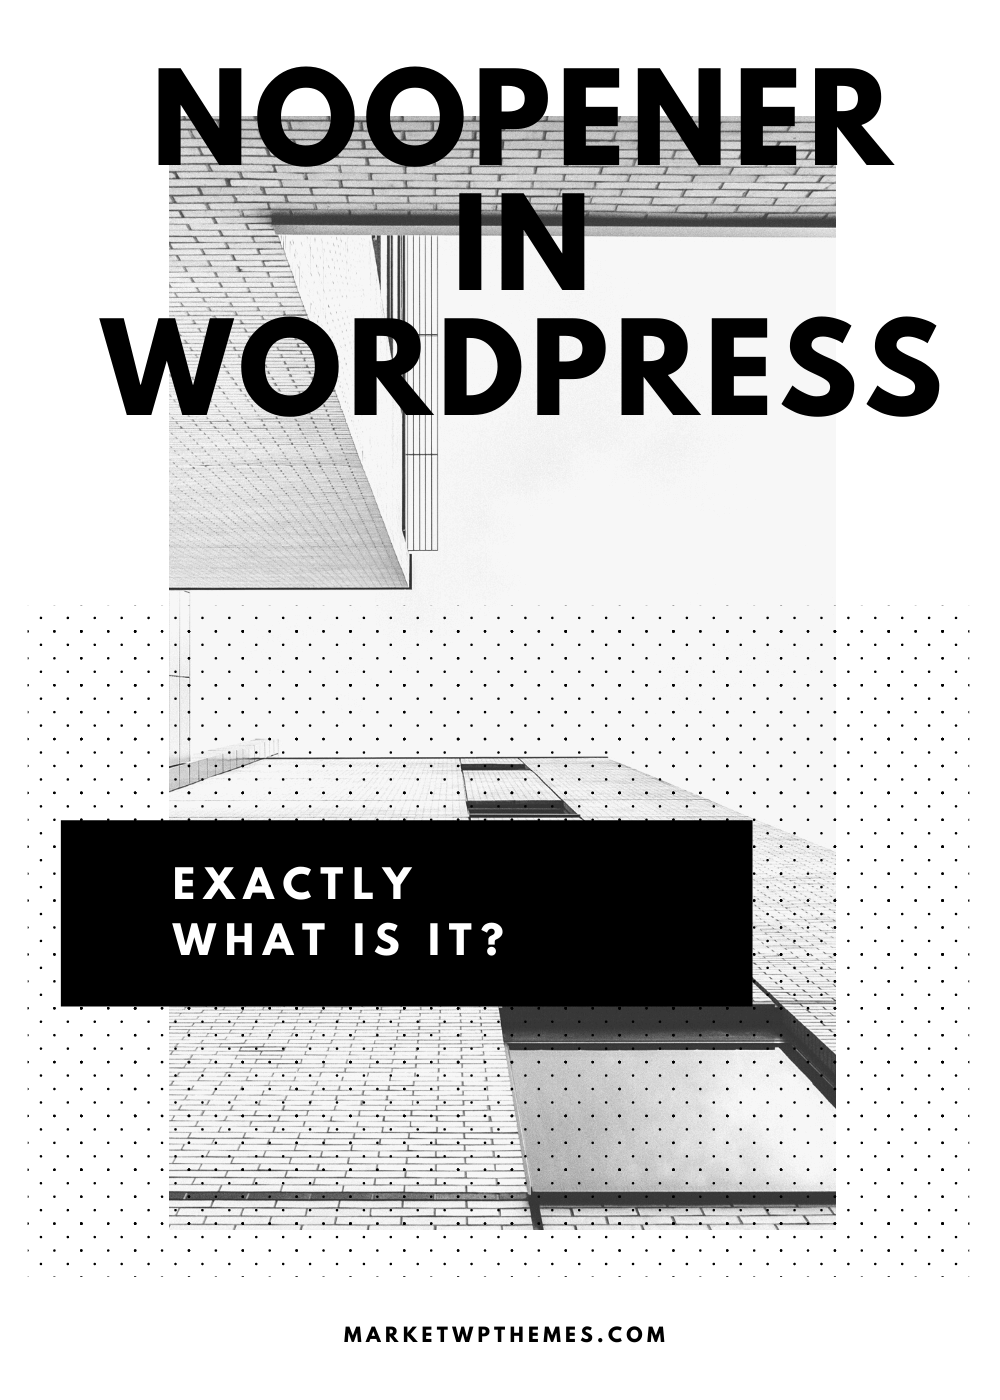 Noopener In WordPress